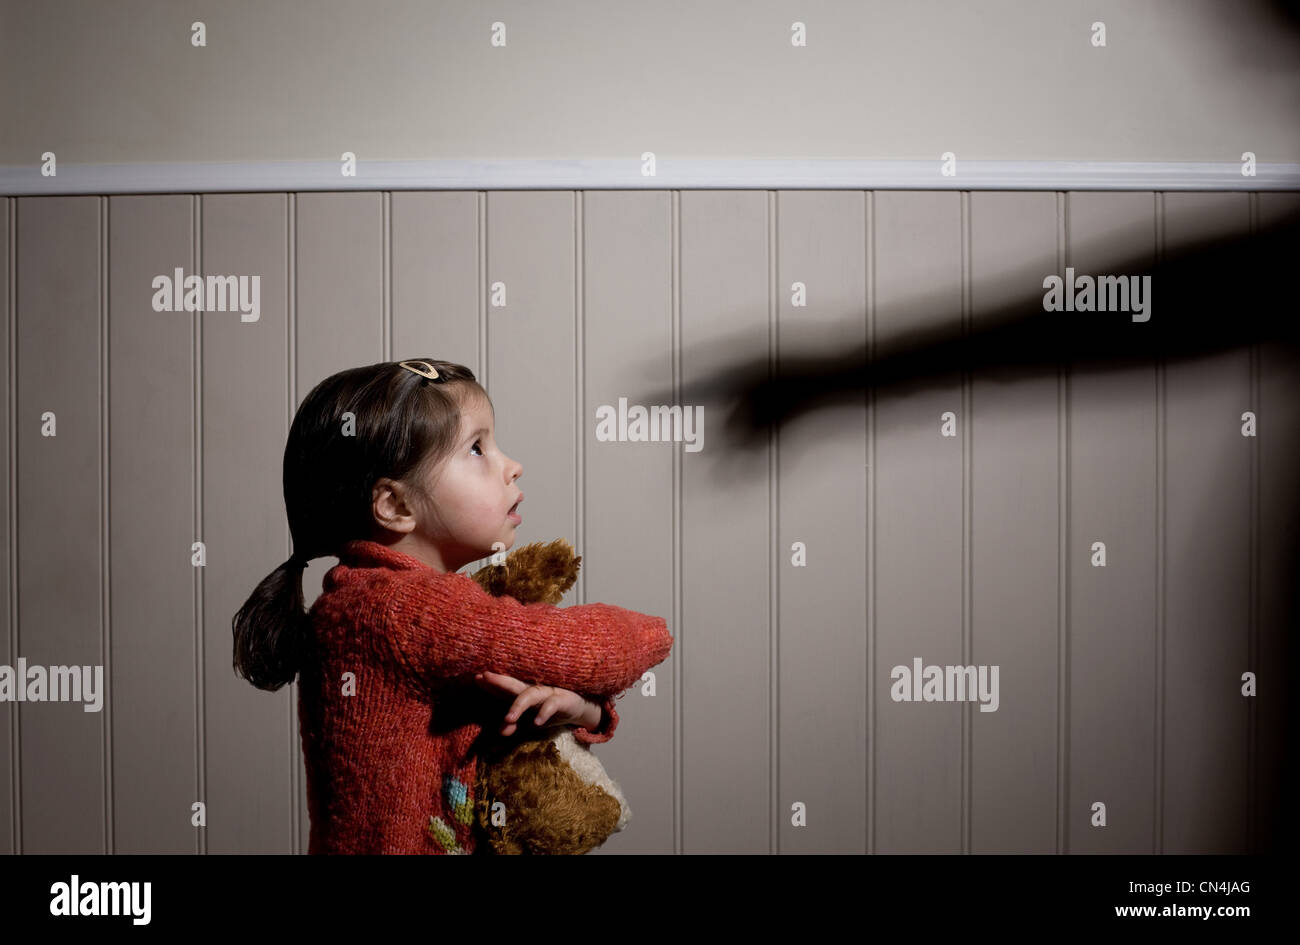 Frightened little girl and shadow of adult hand pointing at her - Stock Image